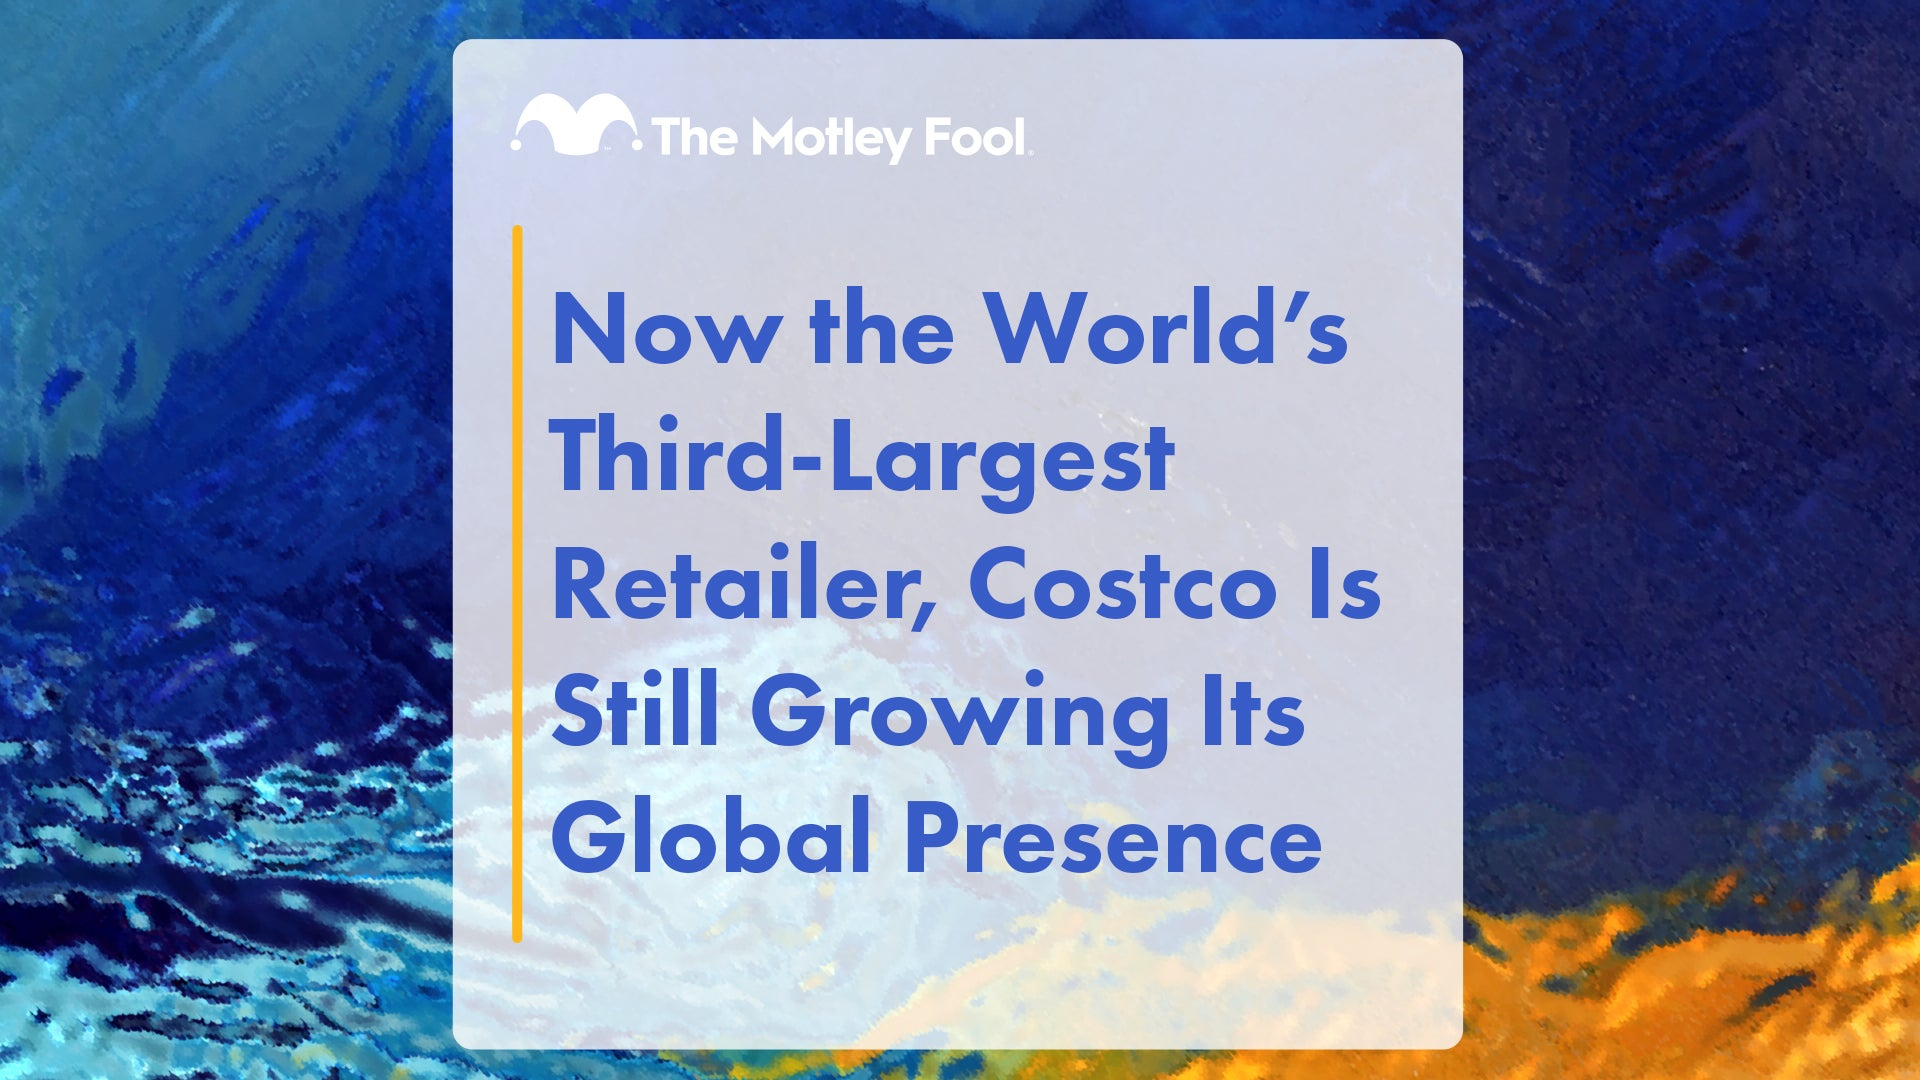 Image Now the World's Third-Largest Retailer, Costco Is Still Growing Its Global Presence